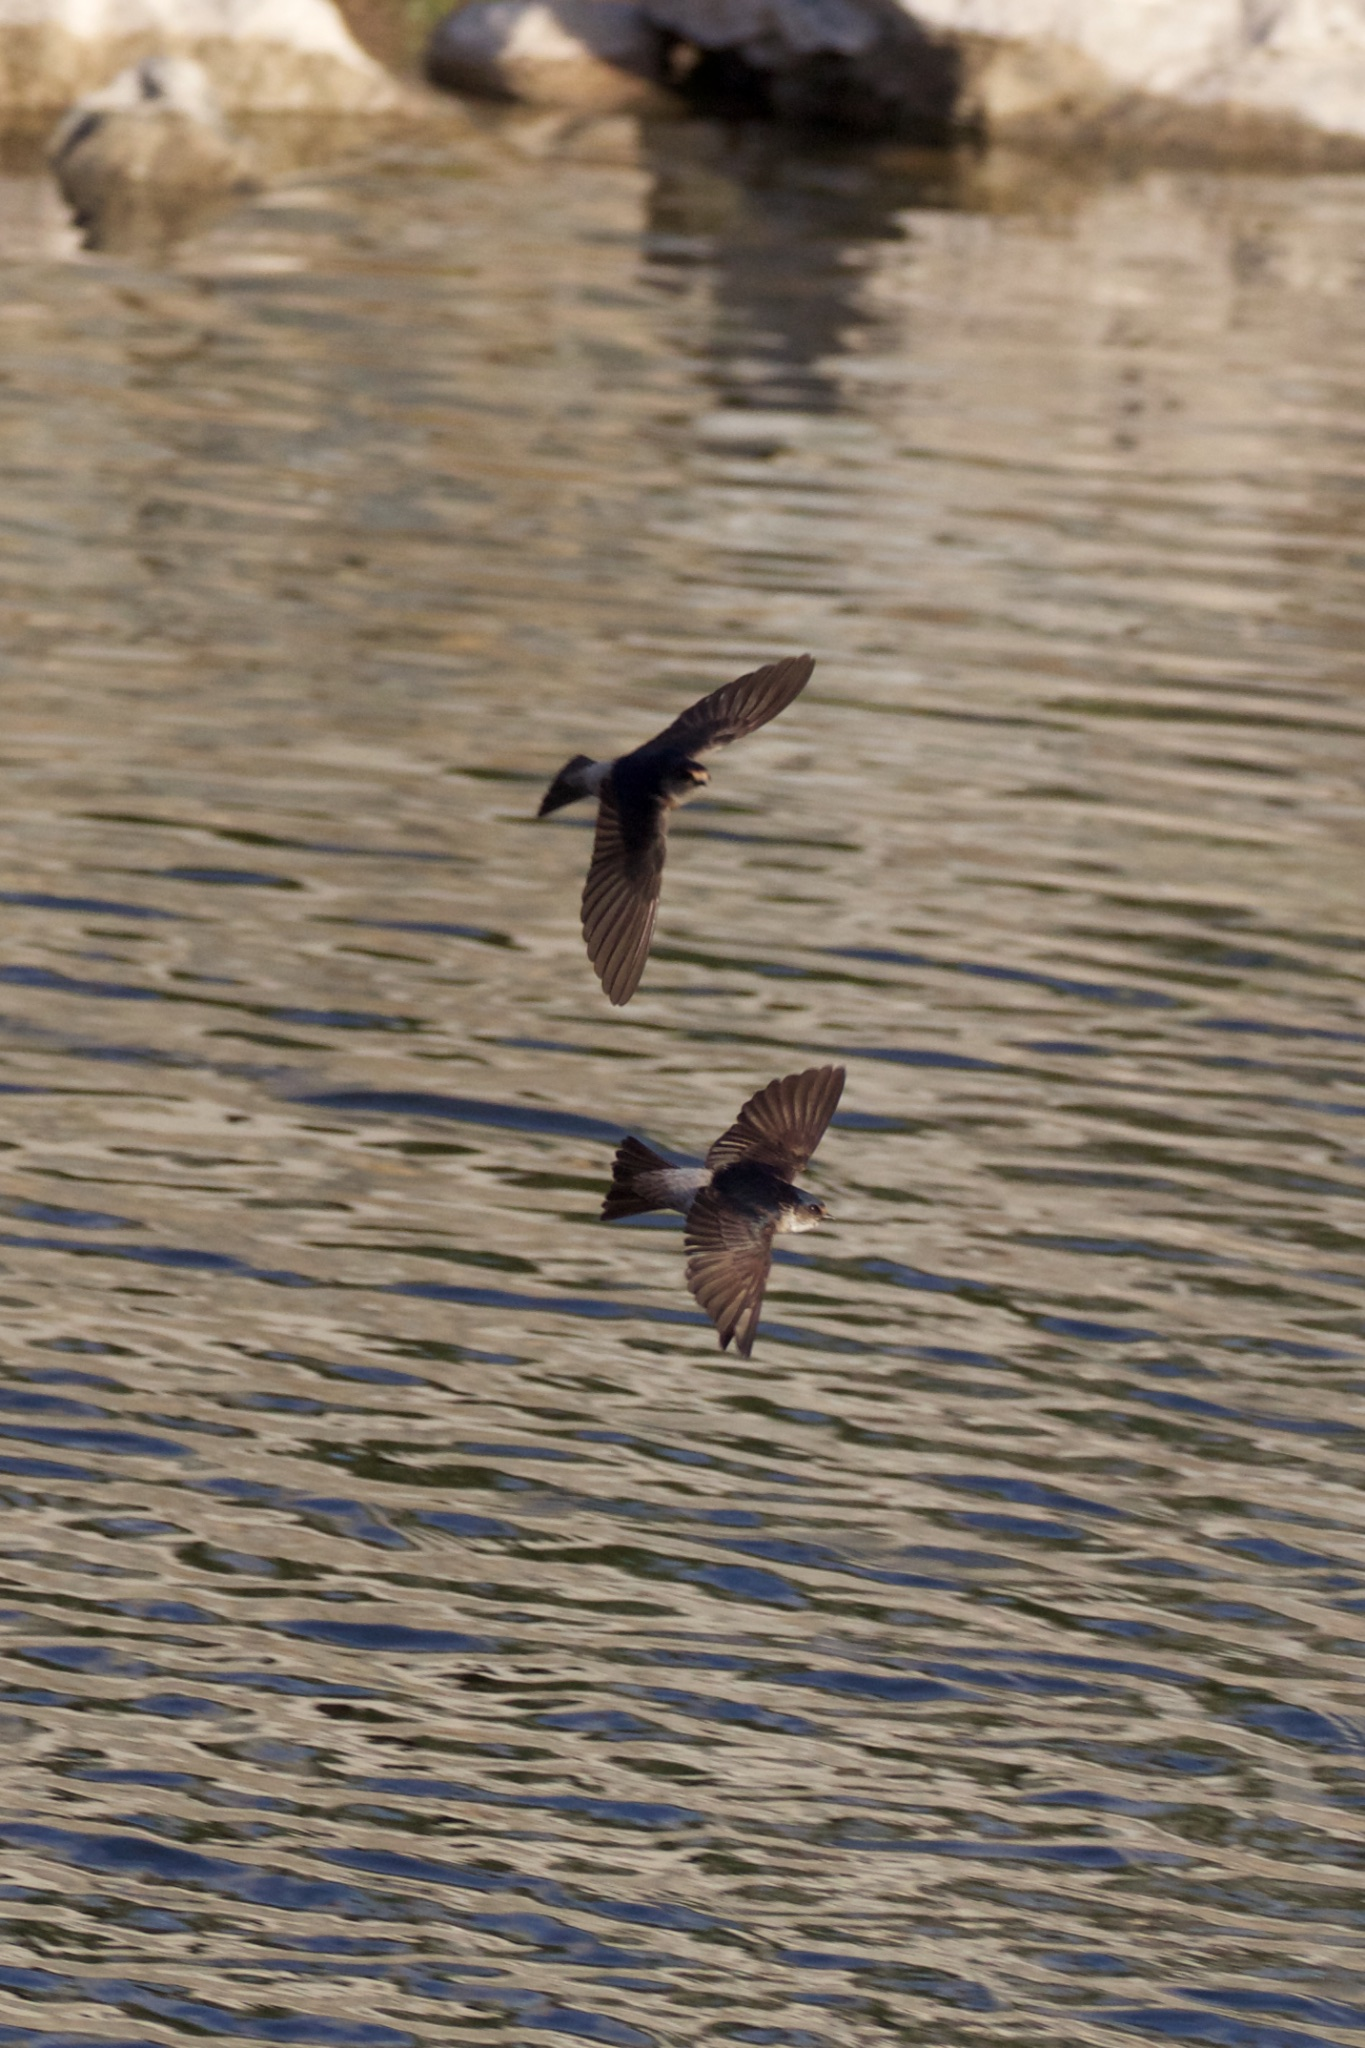 Swifts over water